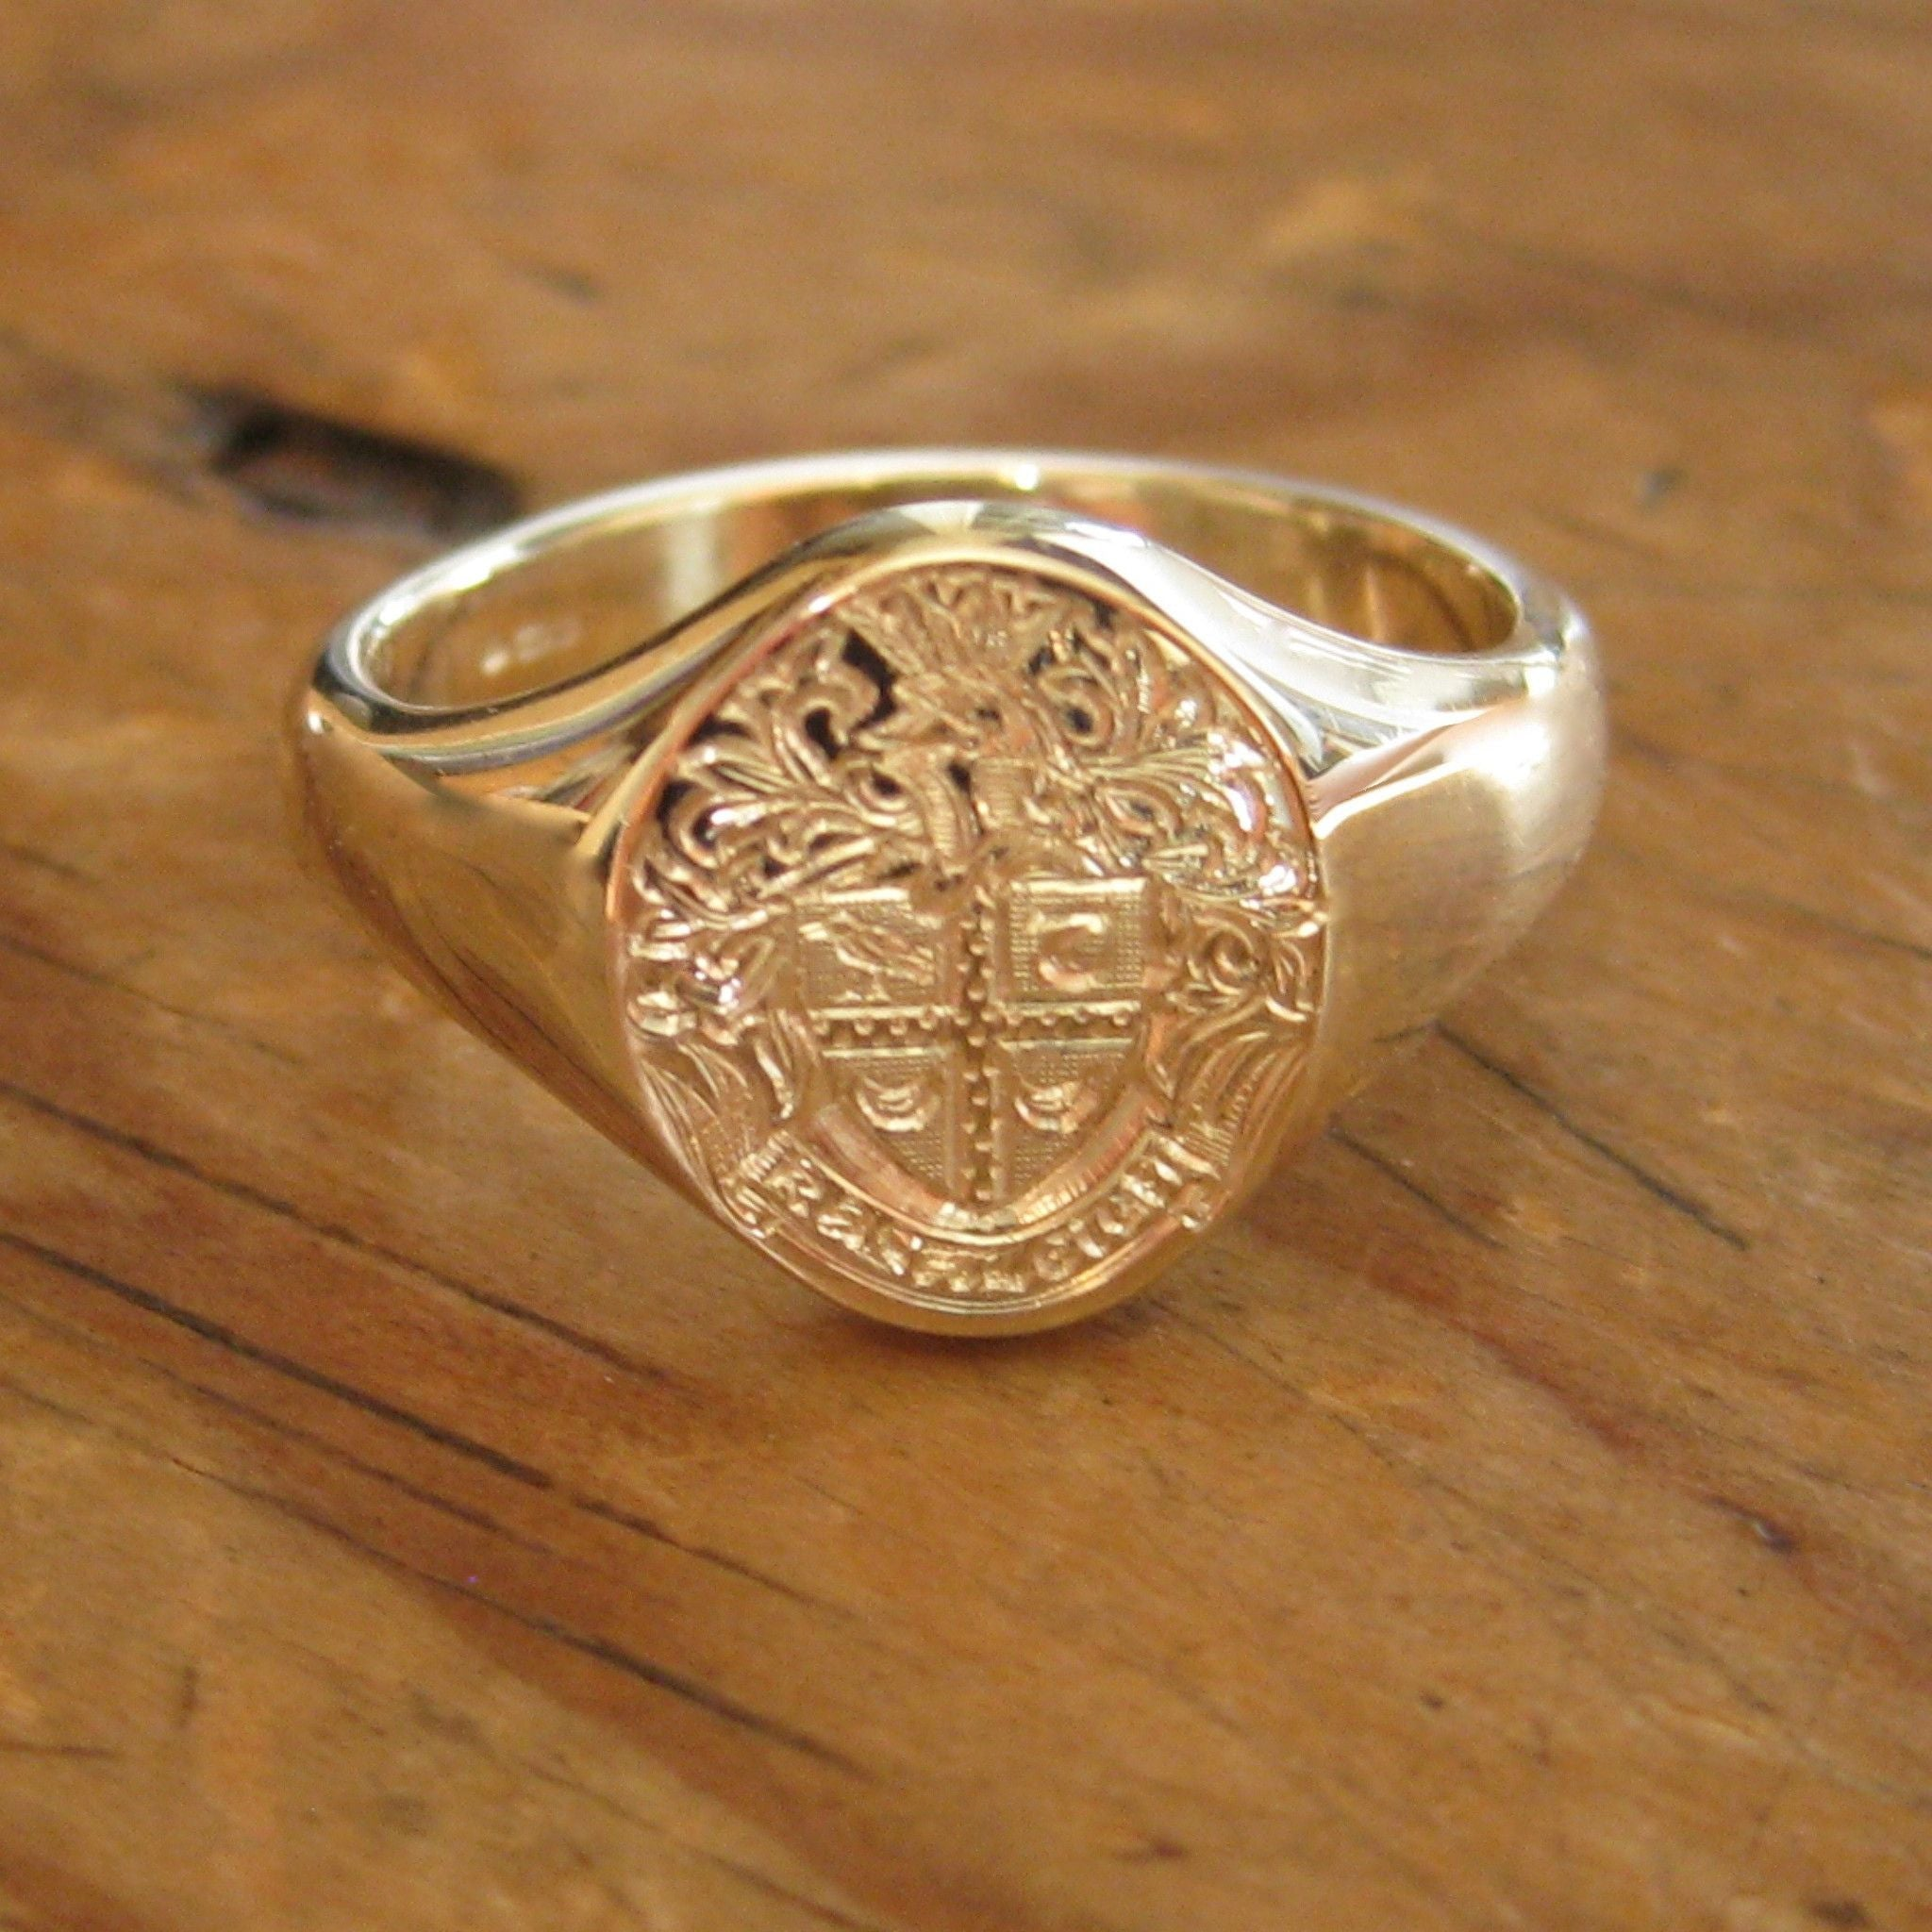 jewelry custom image crest in store medal man rings cent santayana hand shop big on a s ring